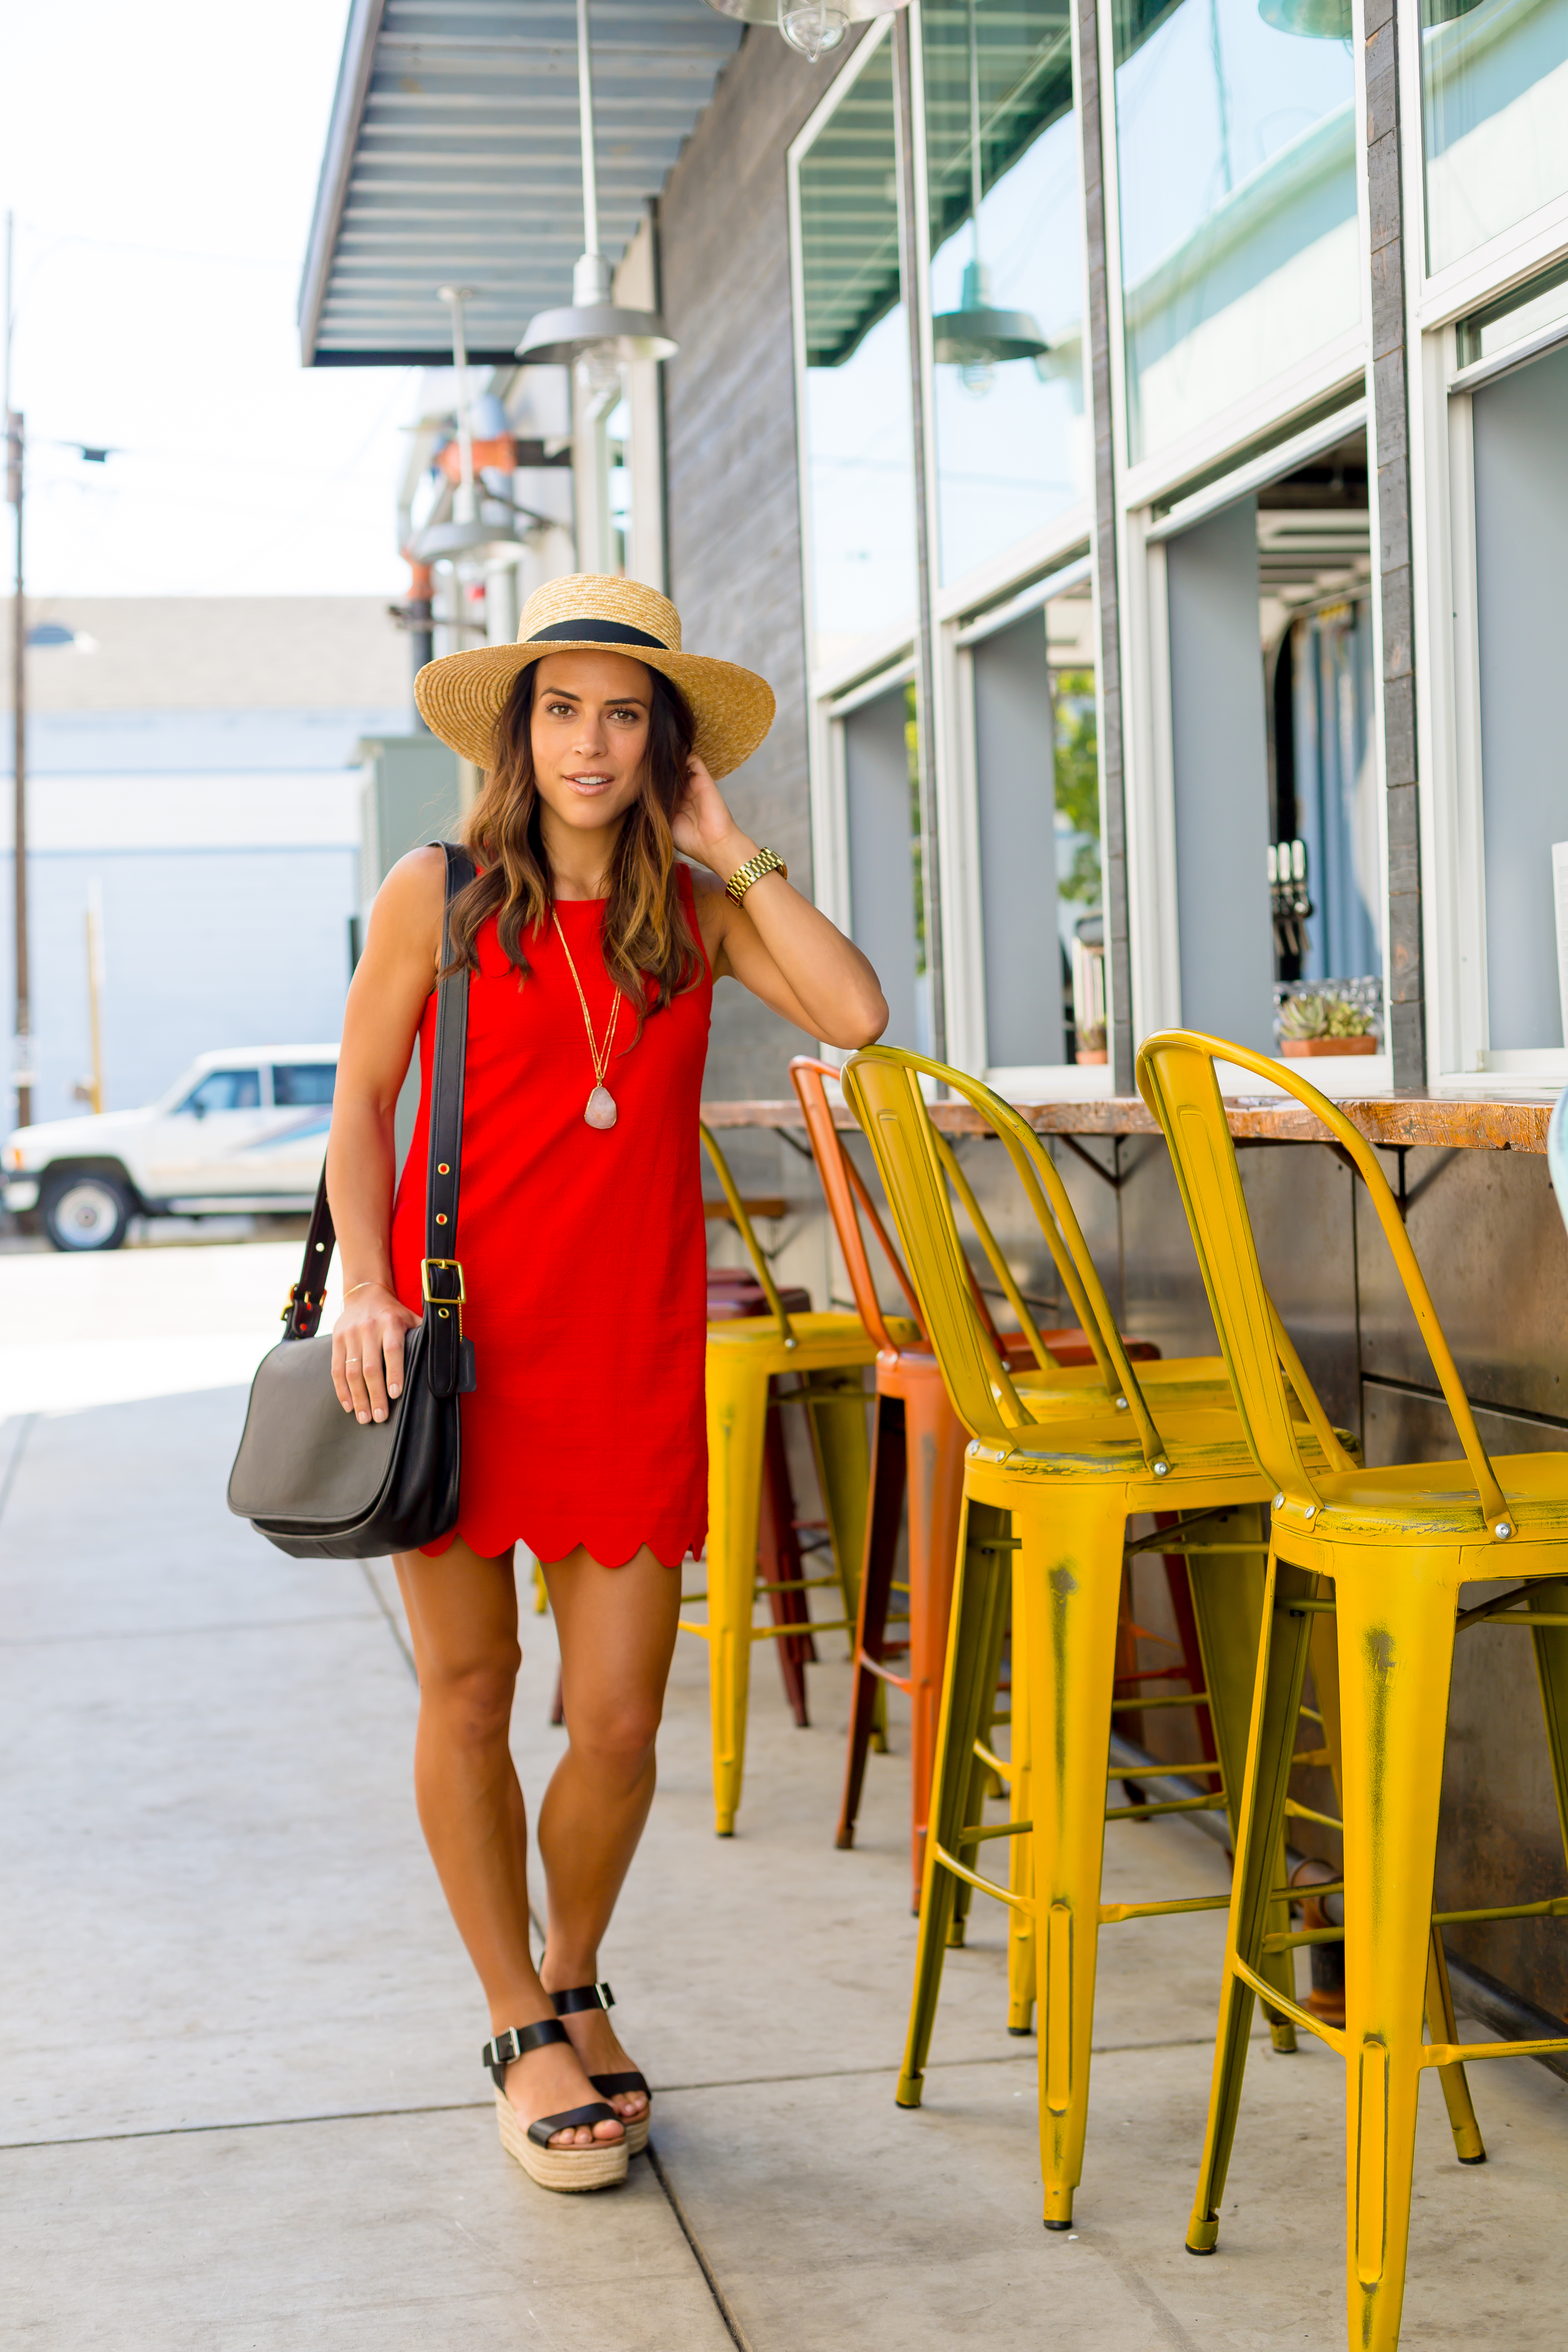 Red Scallop Dress - The Middle of Here